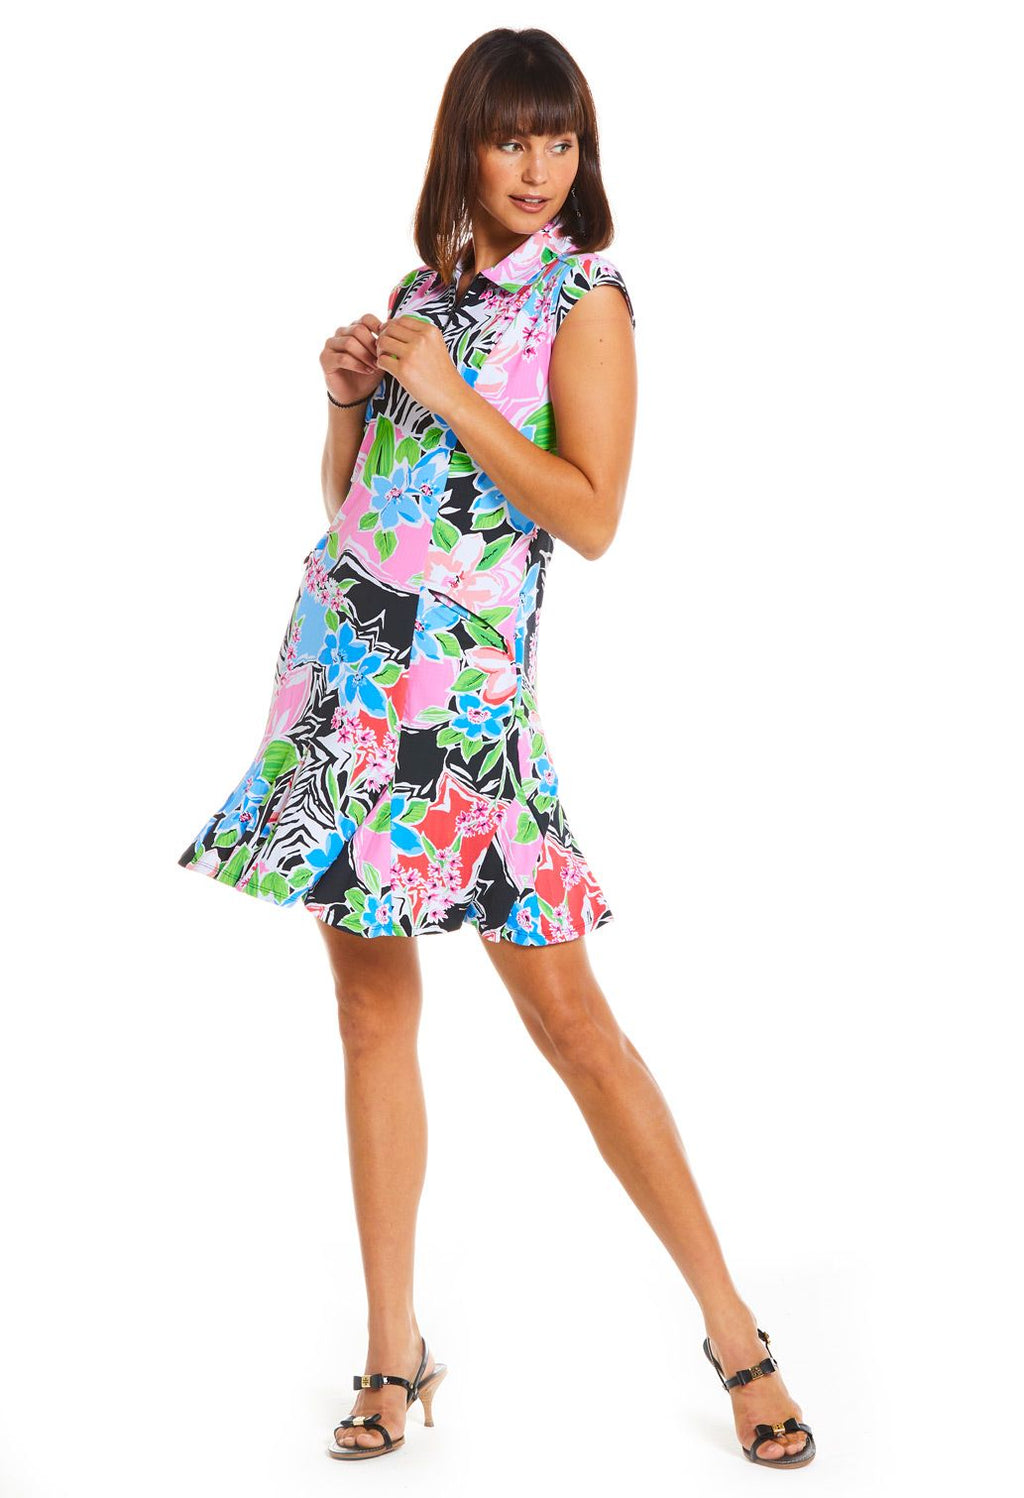 Ibkul  Sleeveless Polo Dress  Amelia Black/Multi - SPF 50